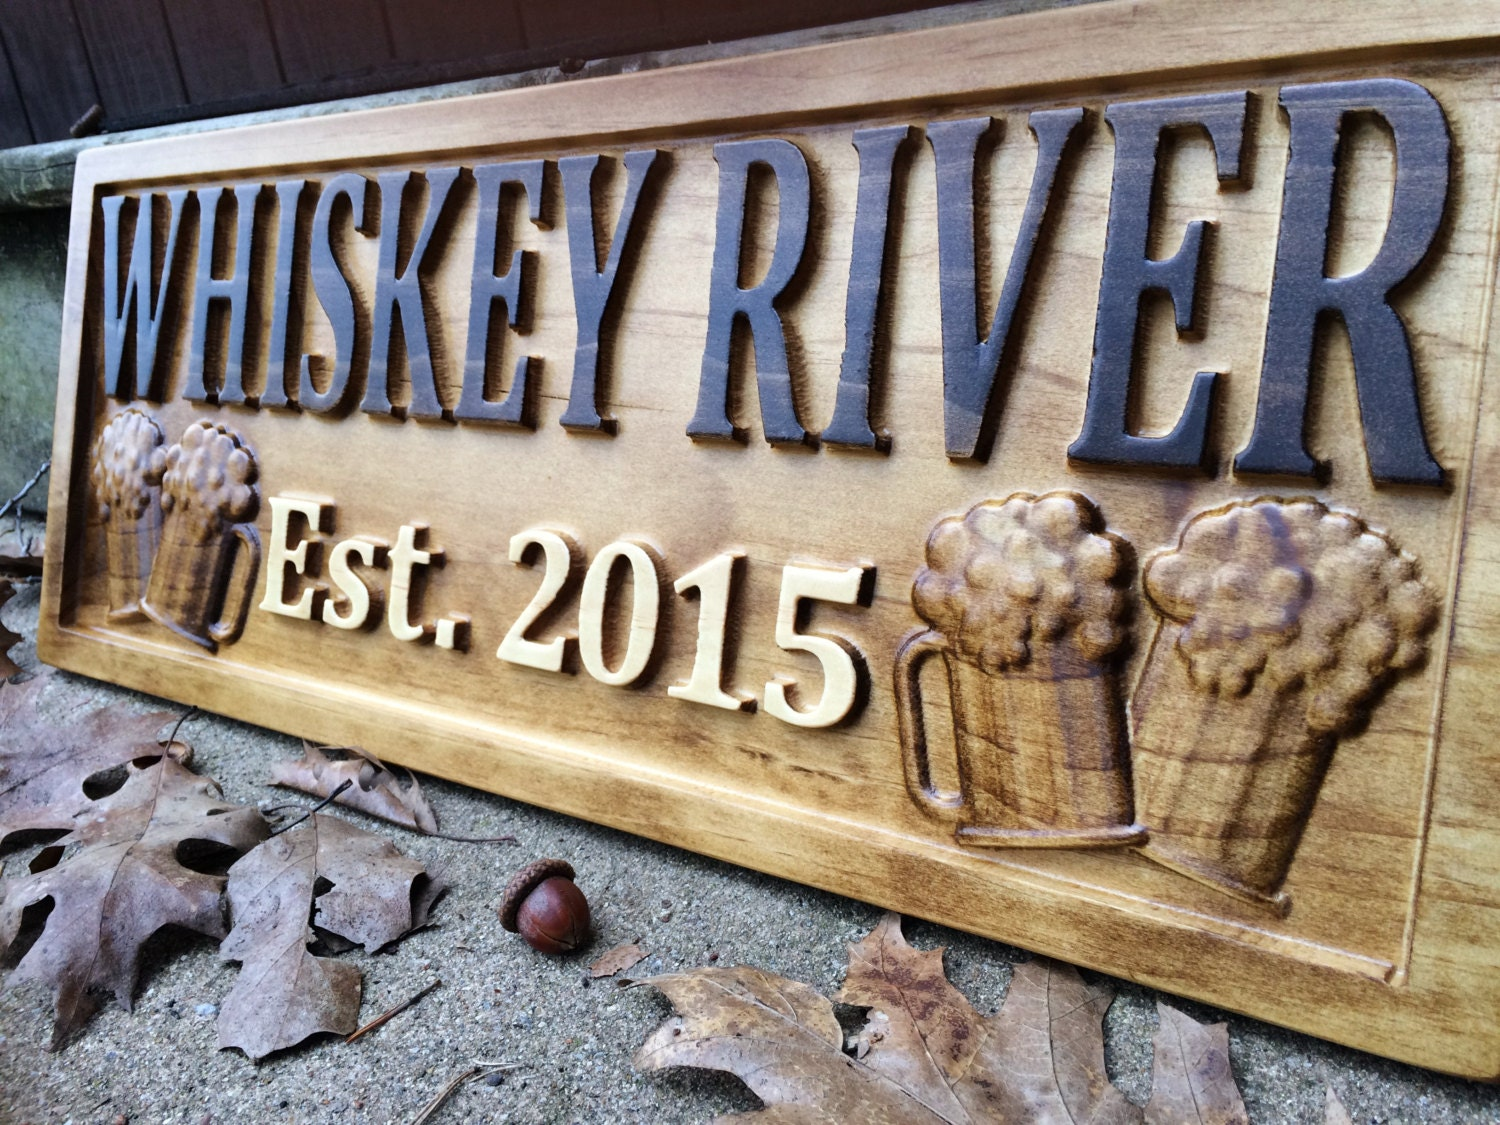 Unique Man Cave Accessories : Personalized bar sign carved wood custom